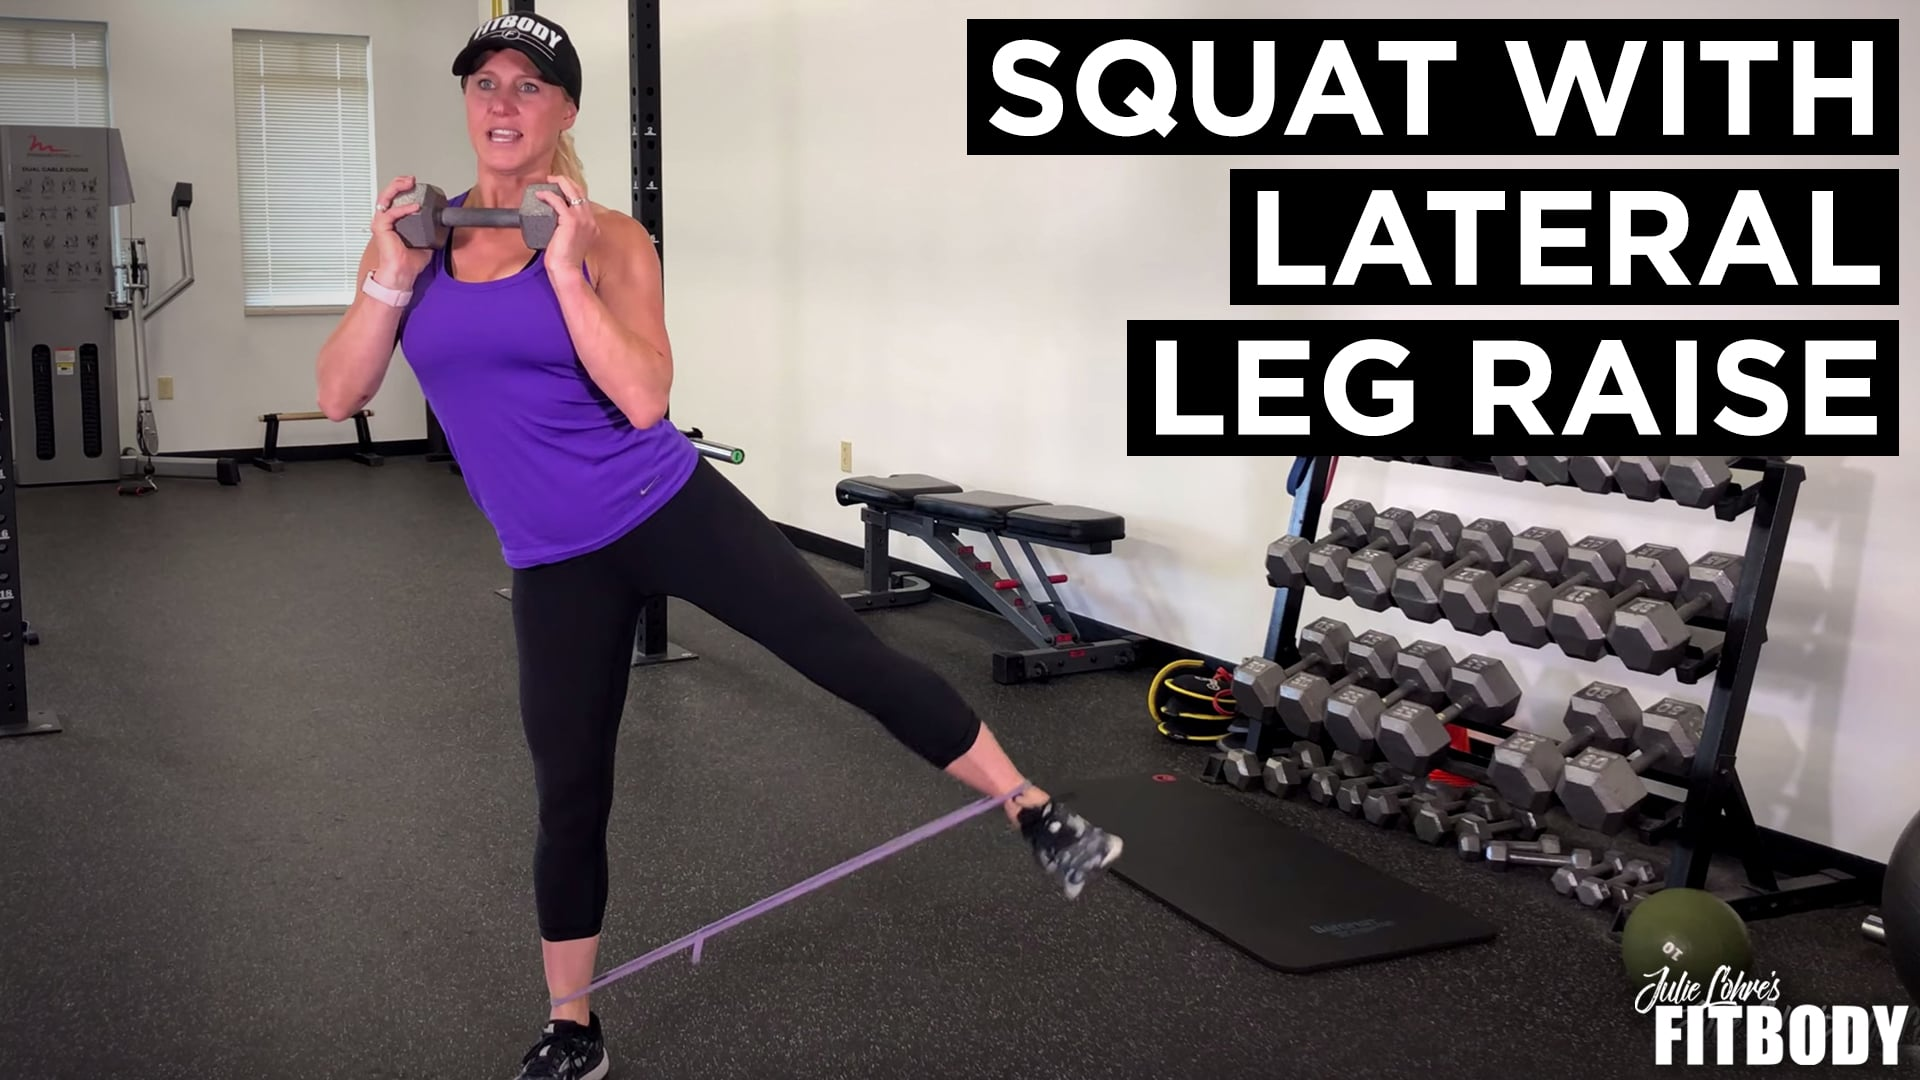 Squat with Lateral Leg Raise